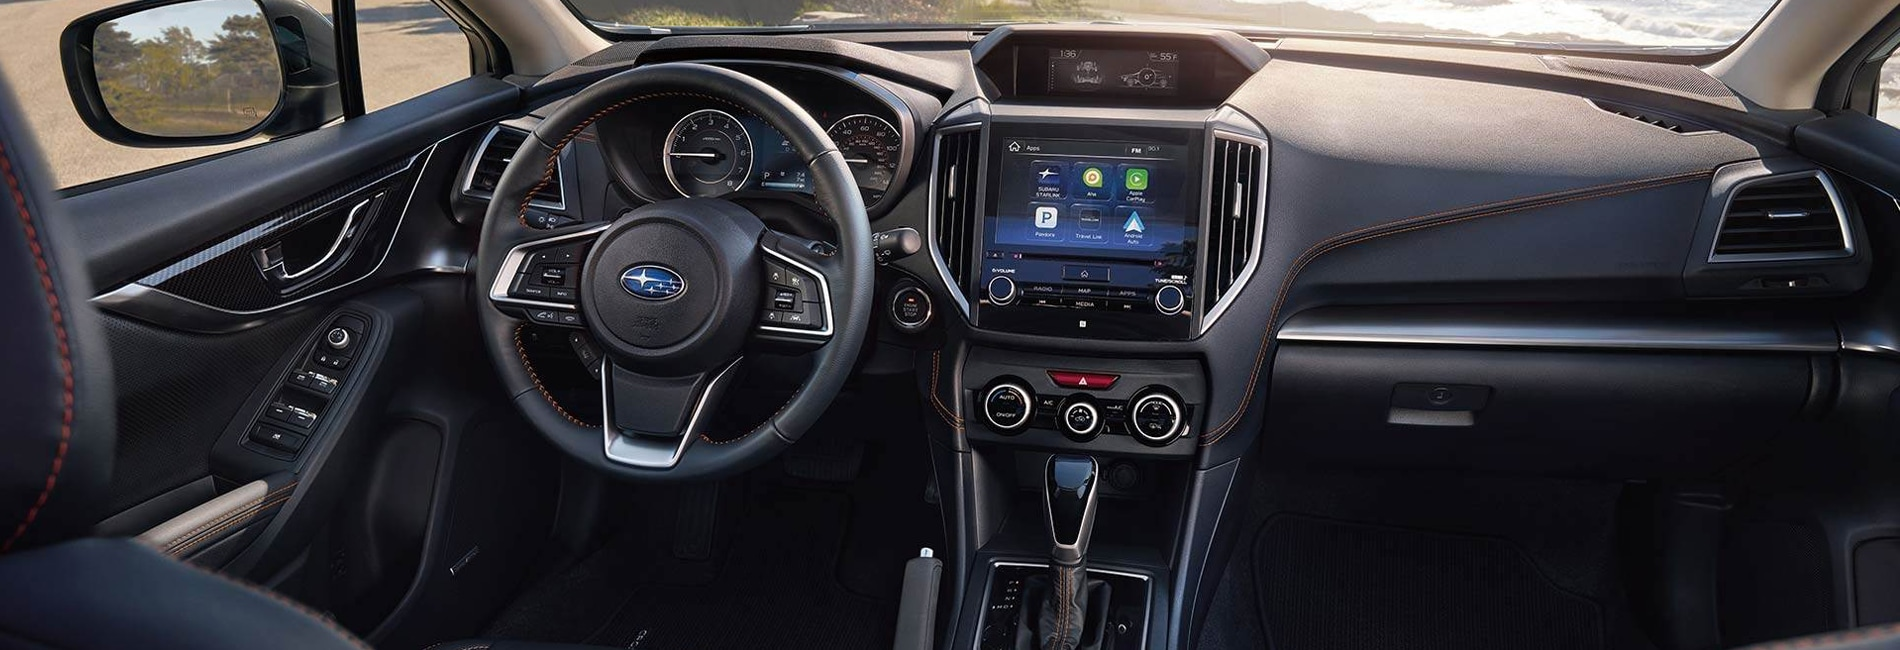 Subaru Crosstrek Interior Vehicle Features